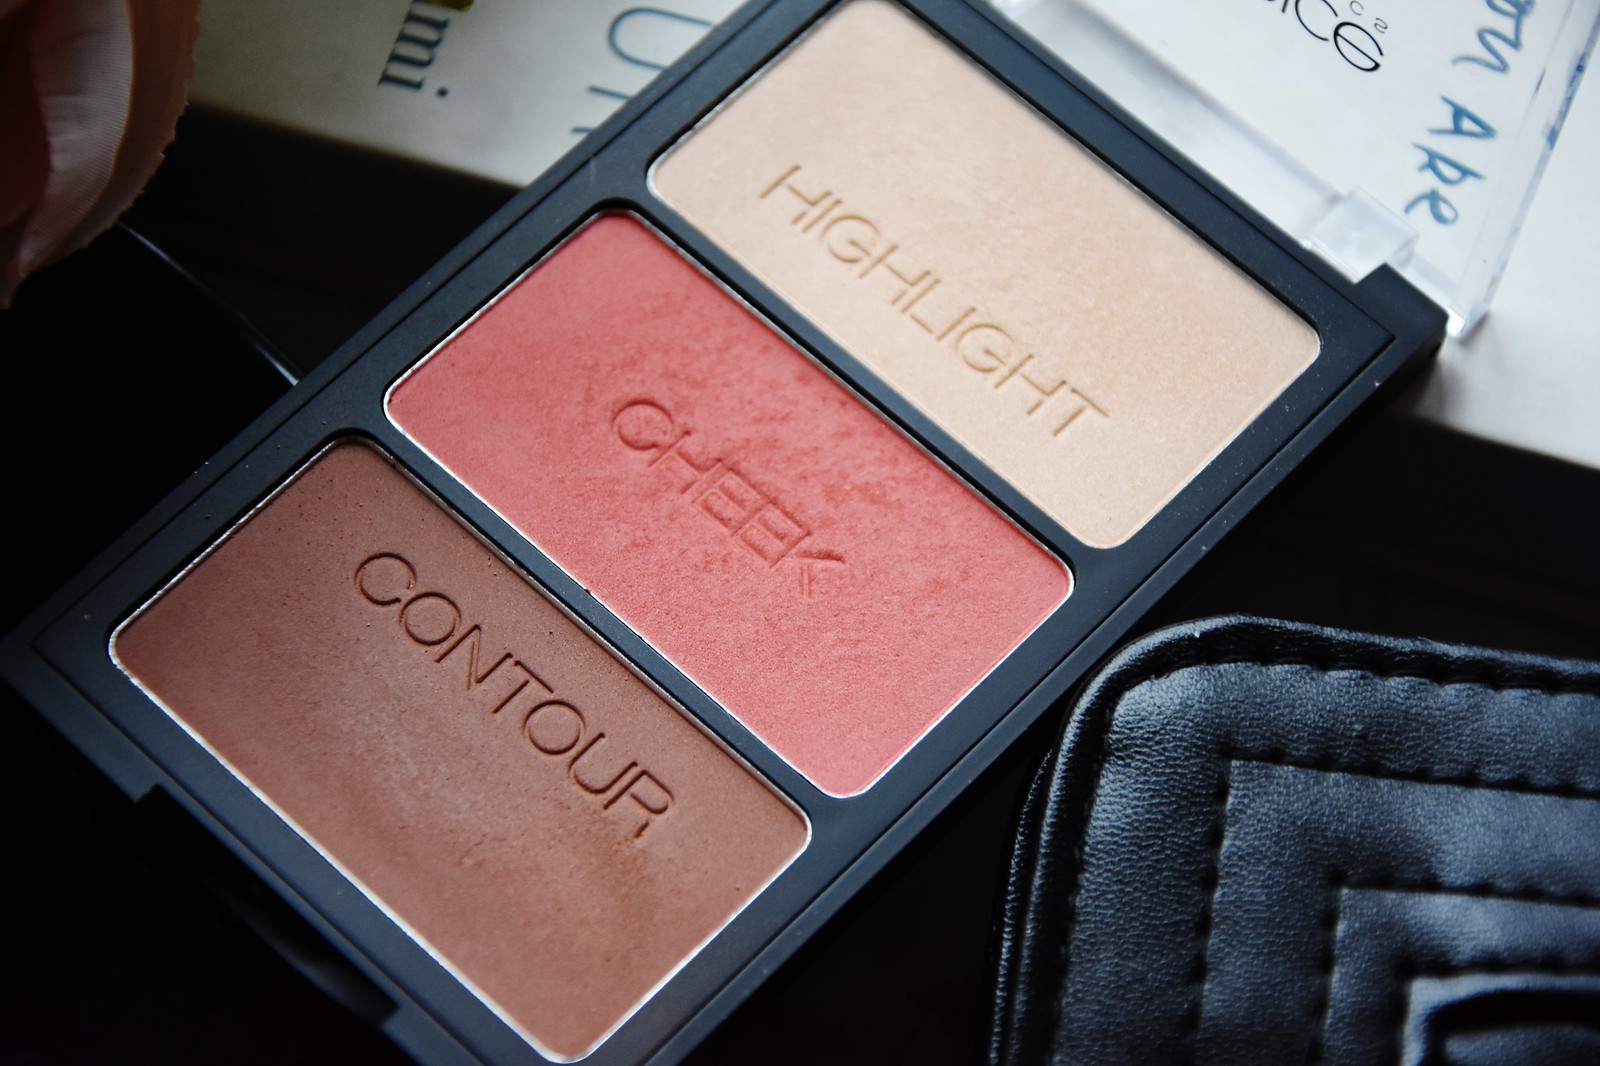 Catrice Sculpting powder palette review